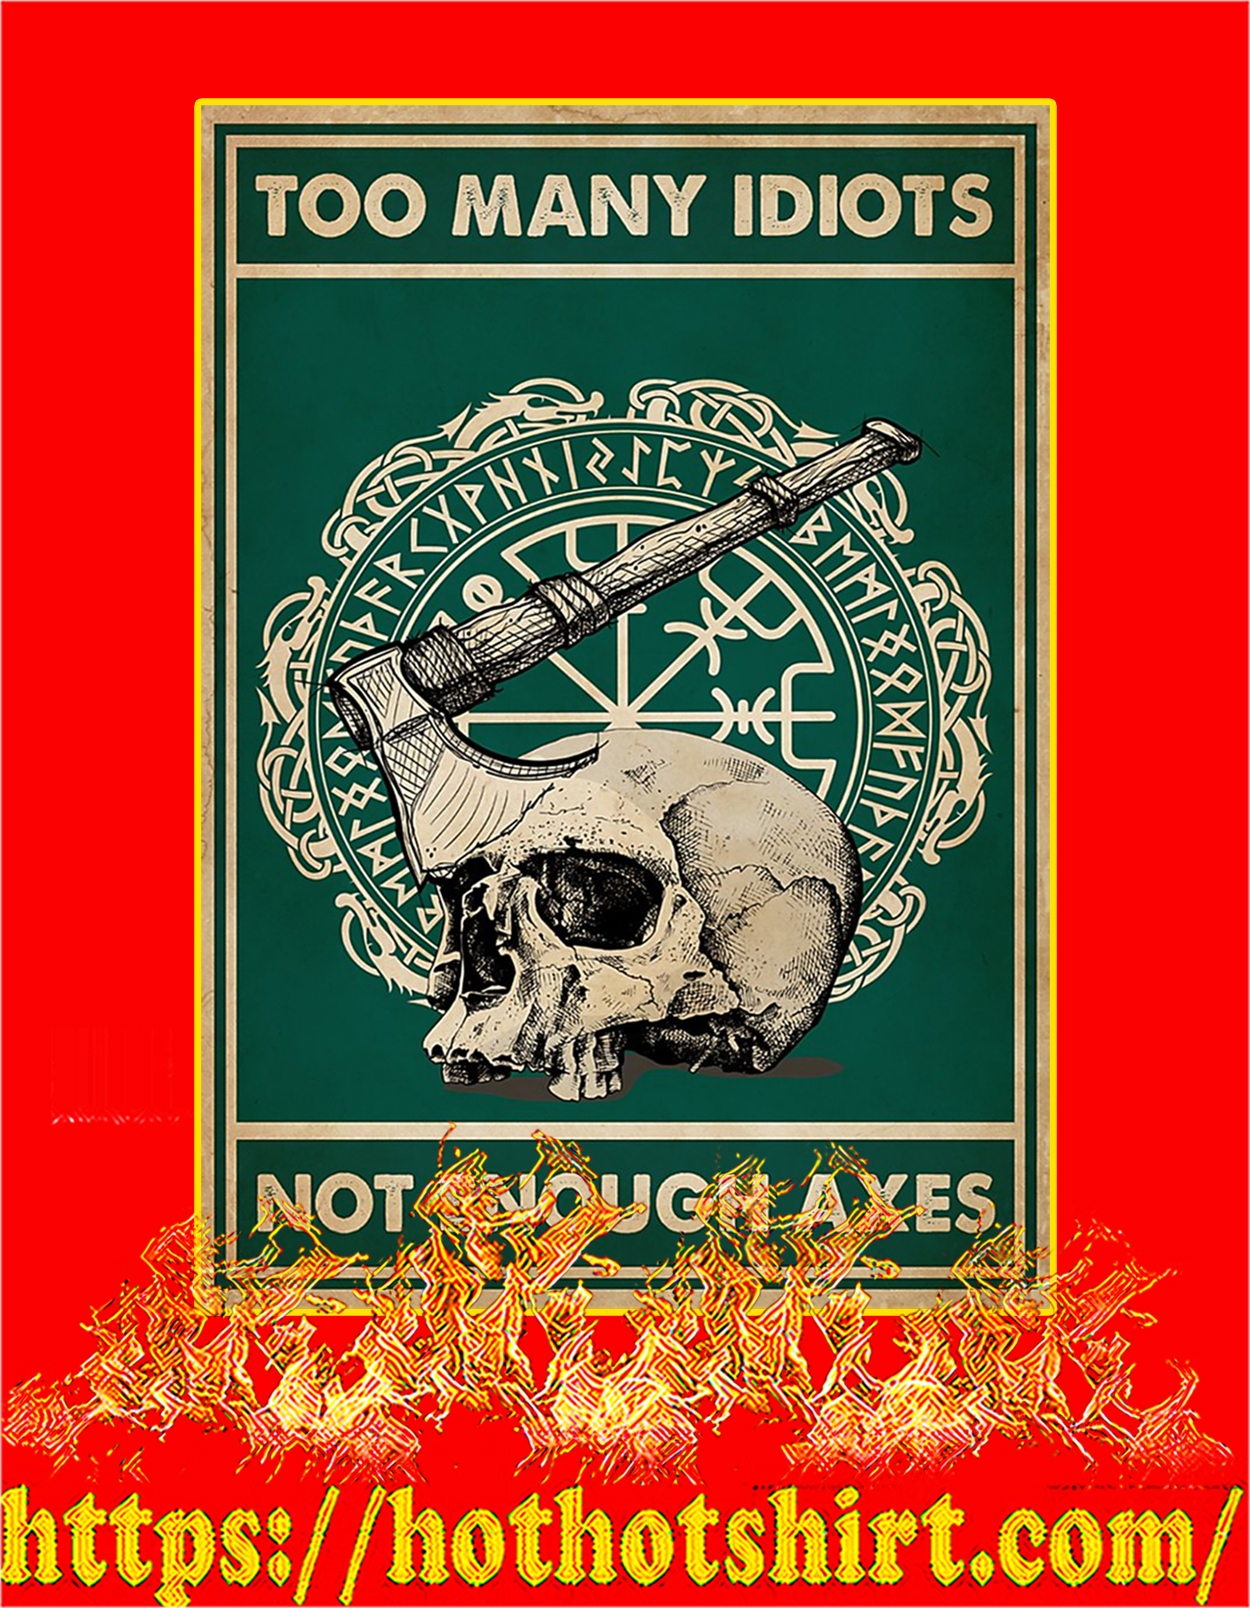 Too many idiots not enough axes poster - A3